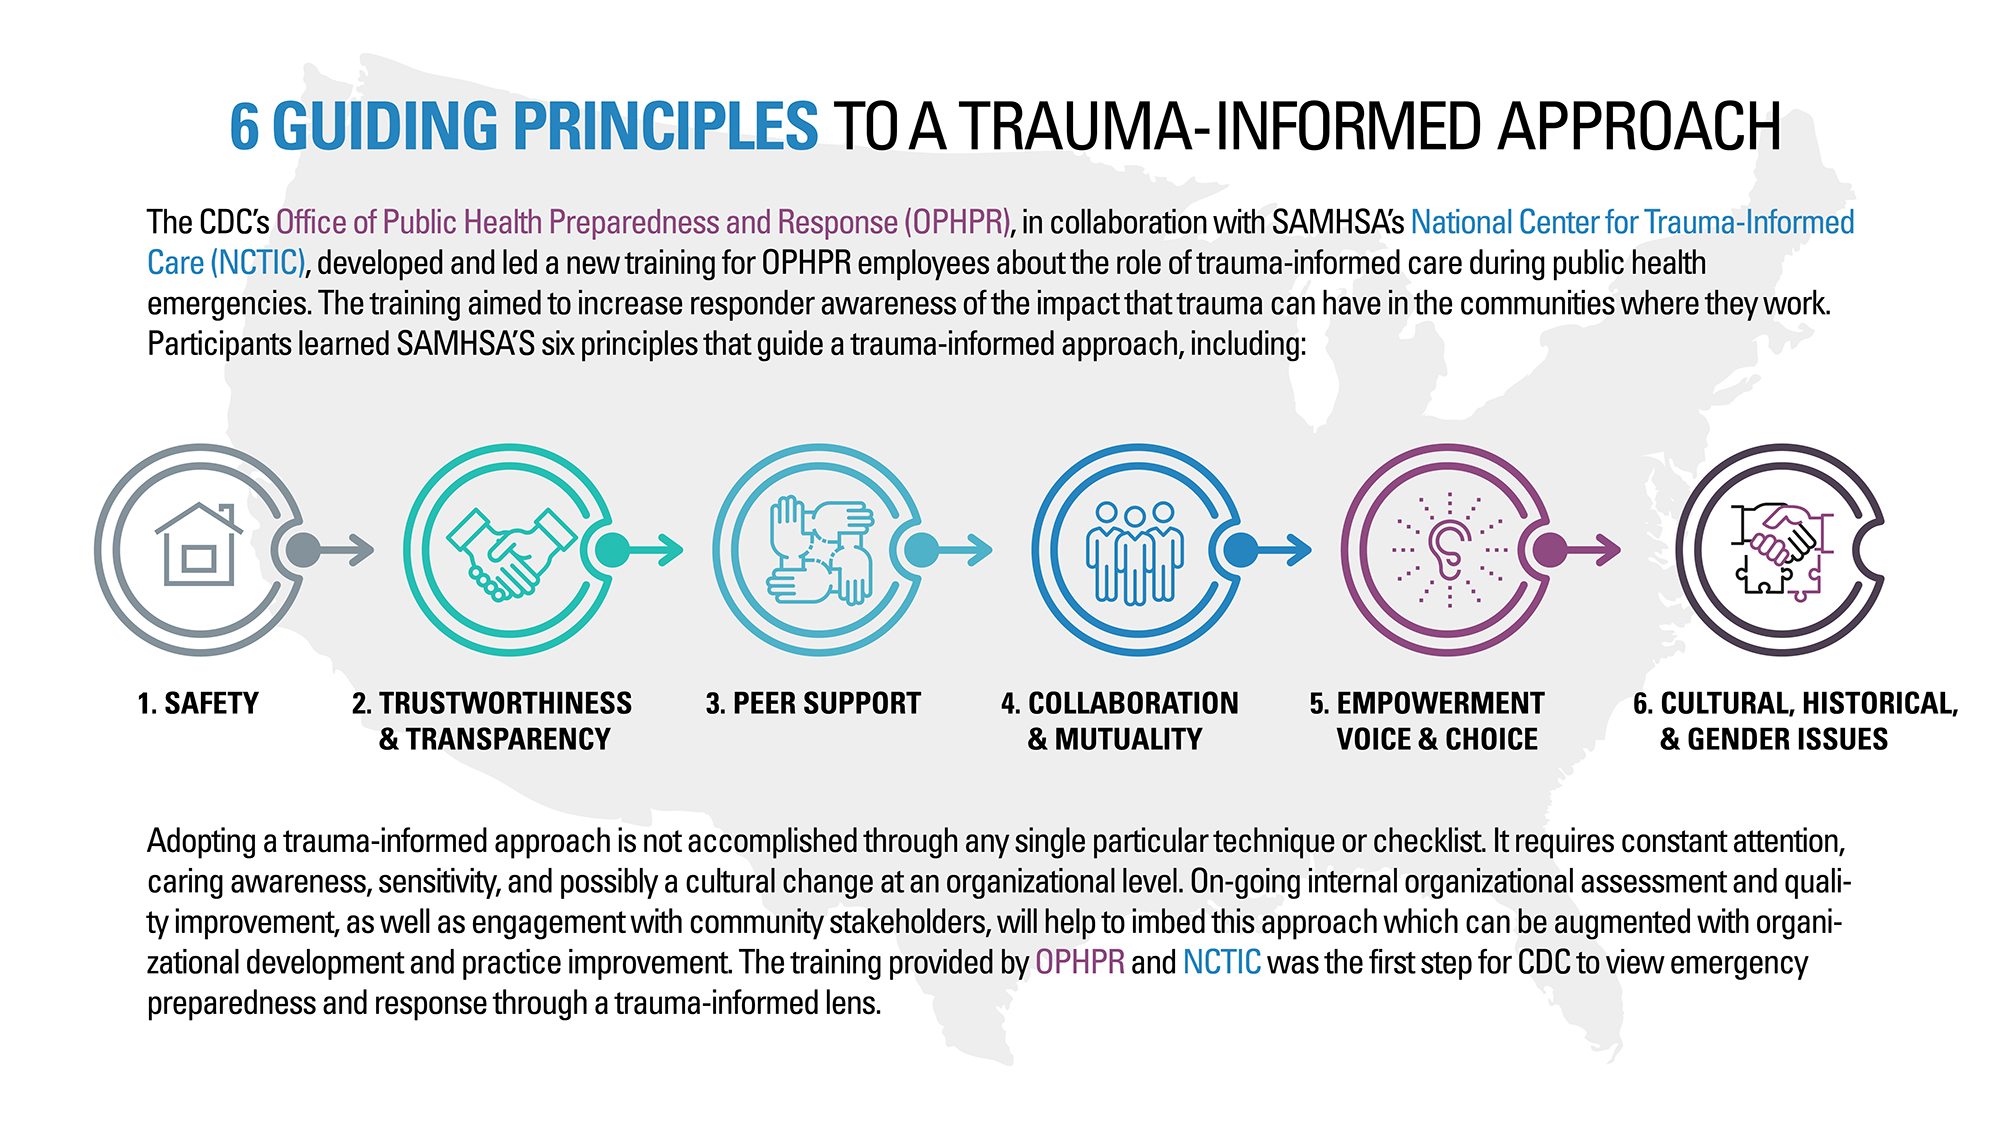 The How And Why Of Trauma Informed >> Infographic 6 Guiding Principles To A Trauma Informed Approach Cdc